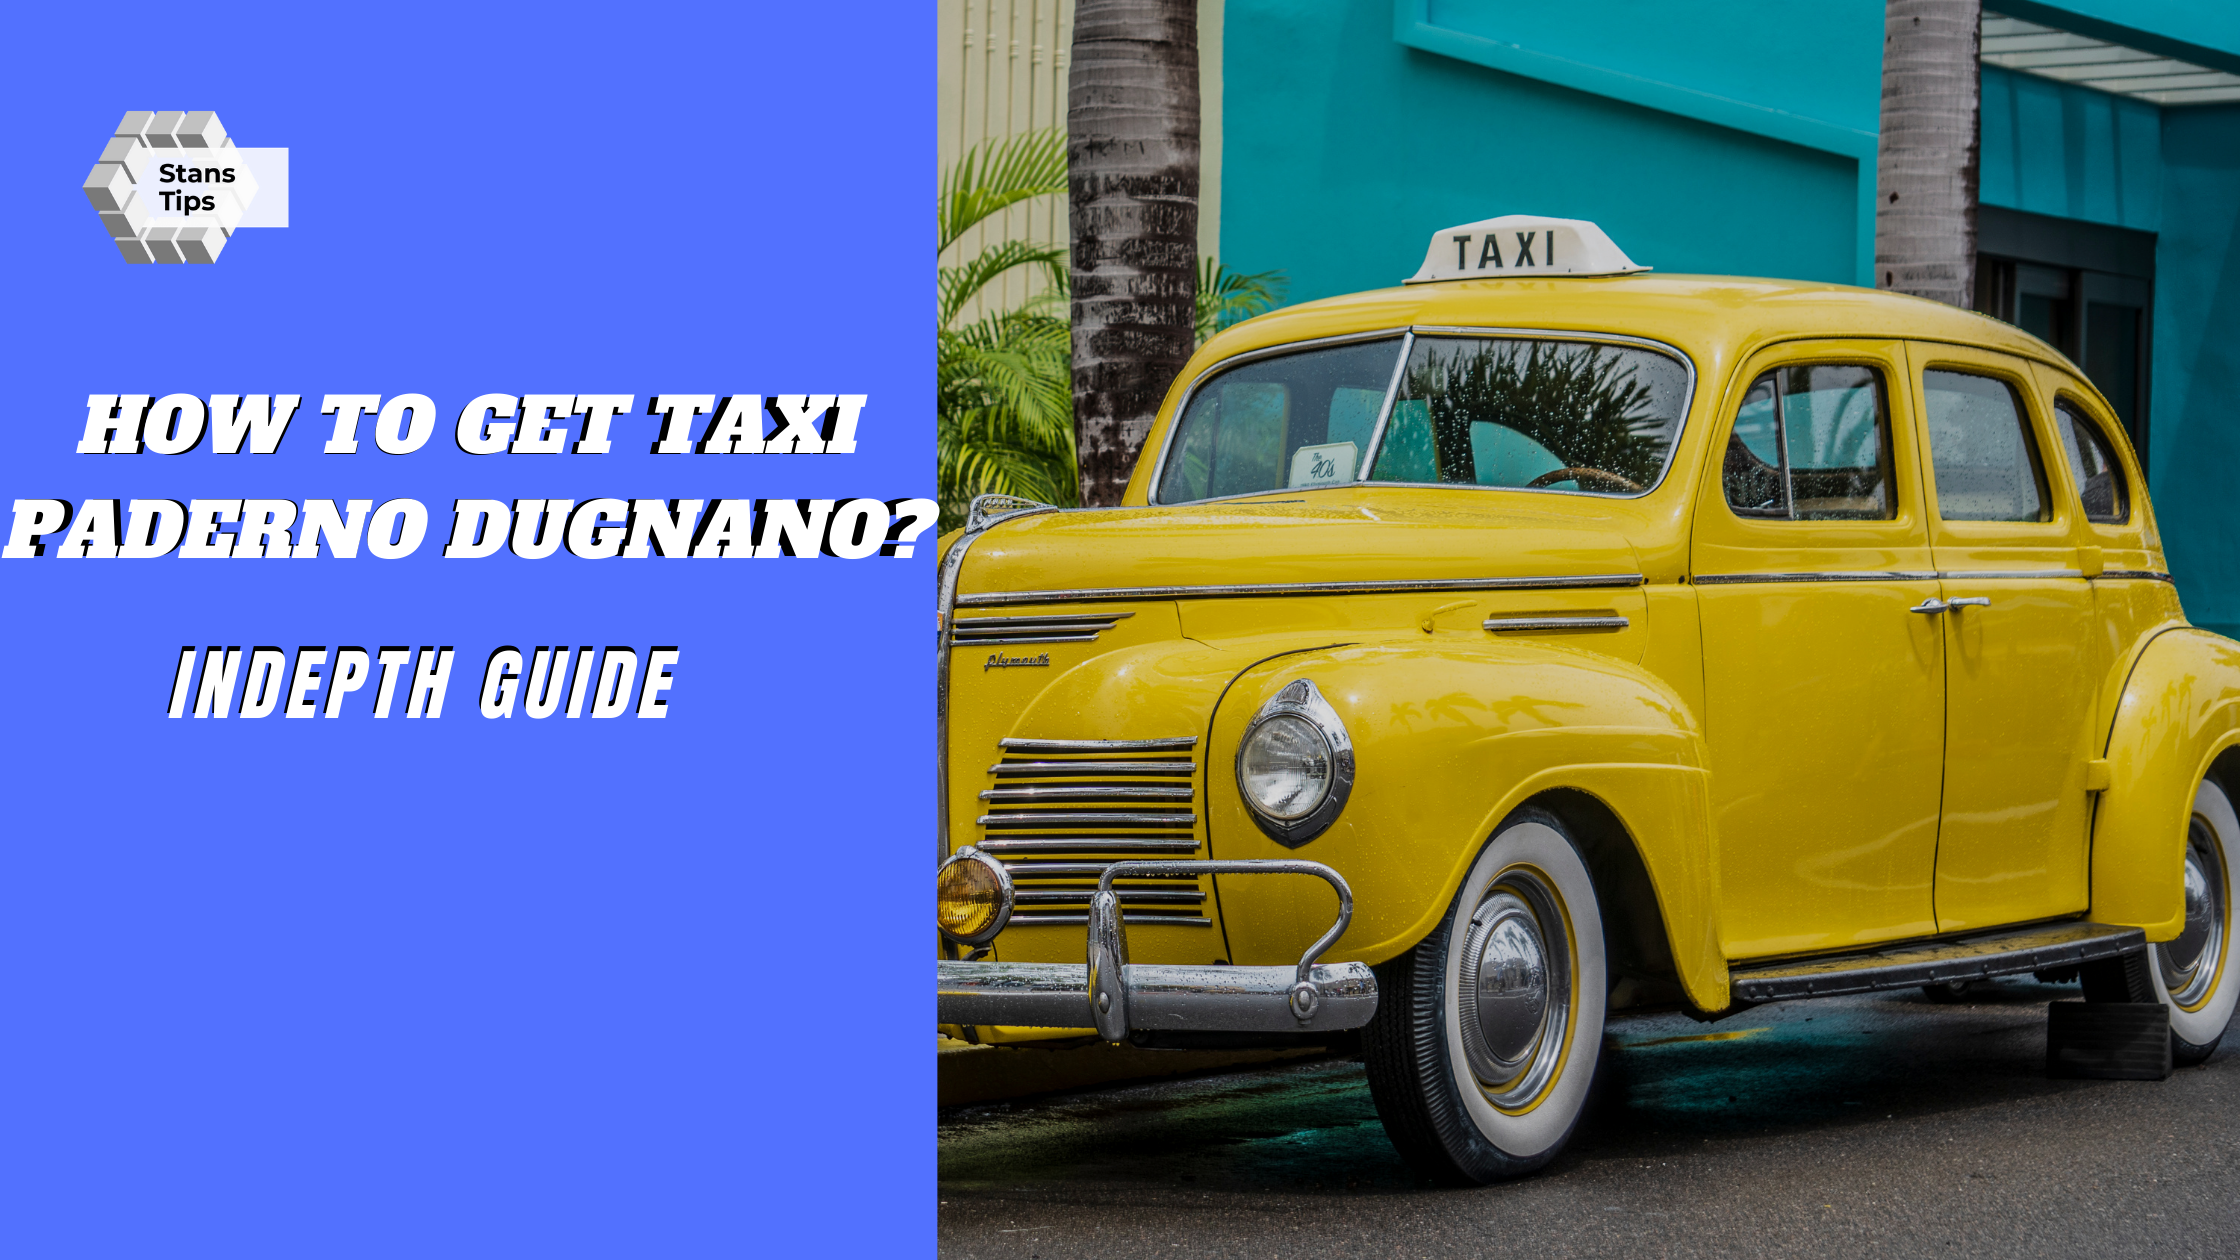 How to get taxi paderno dugnano